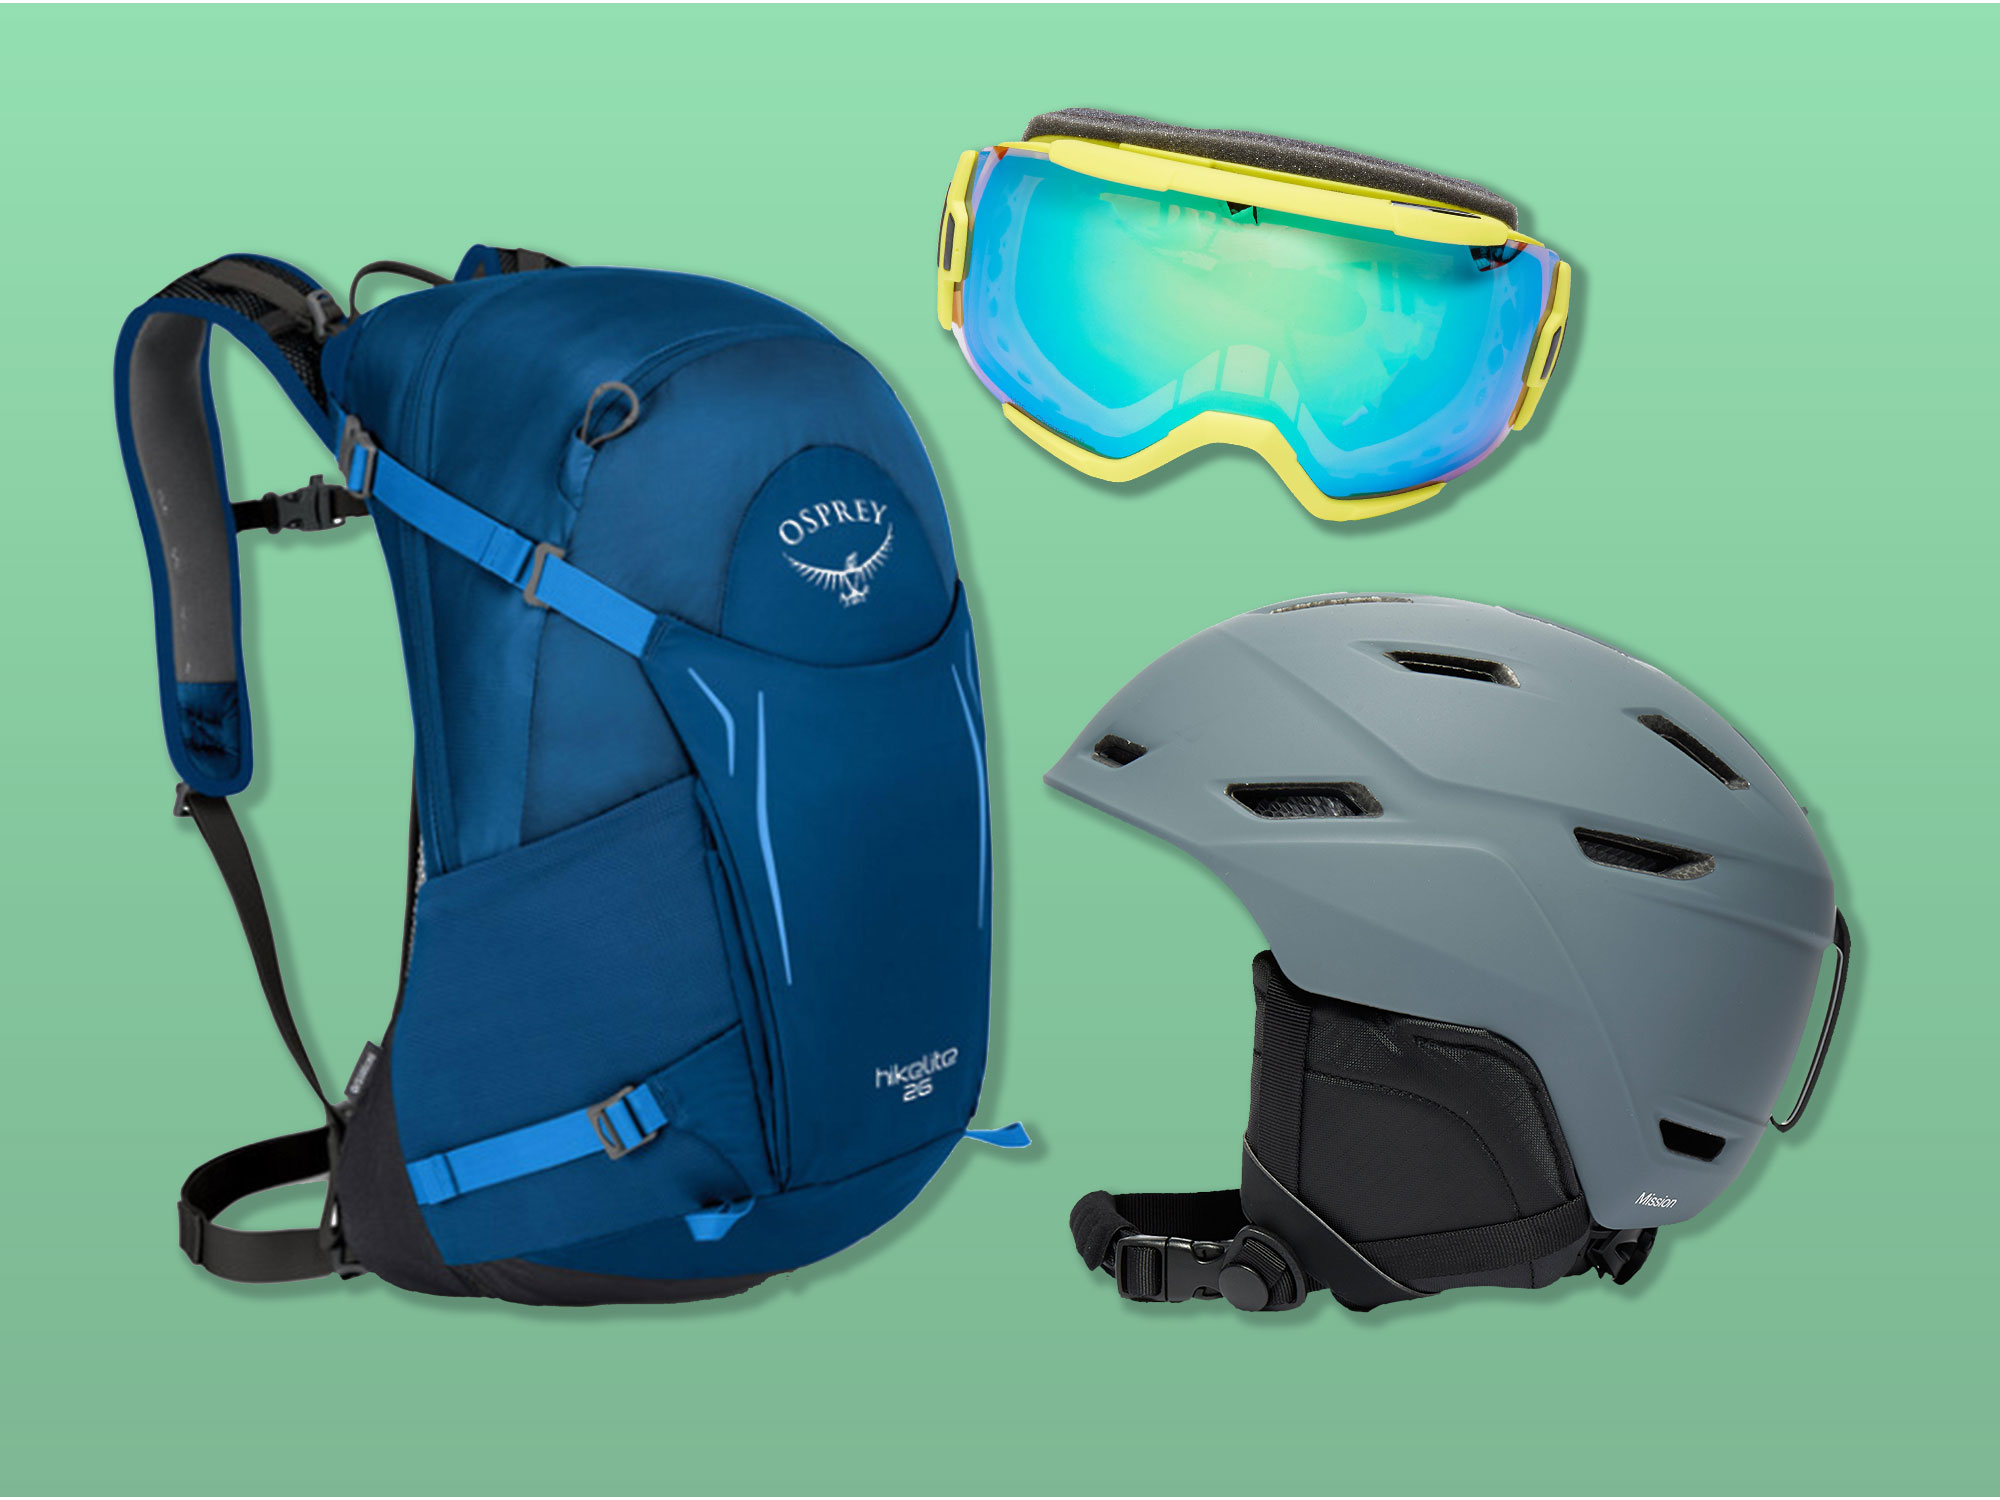 Helmets Goggles and Daysack